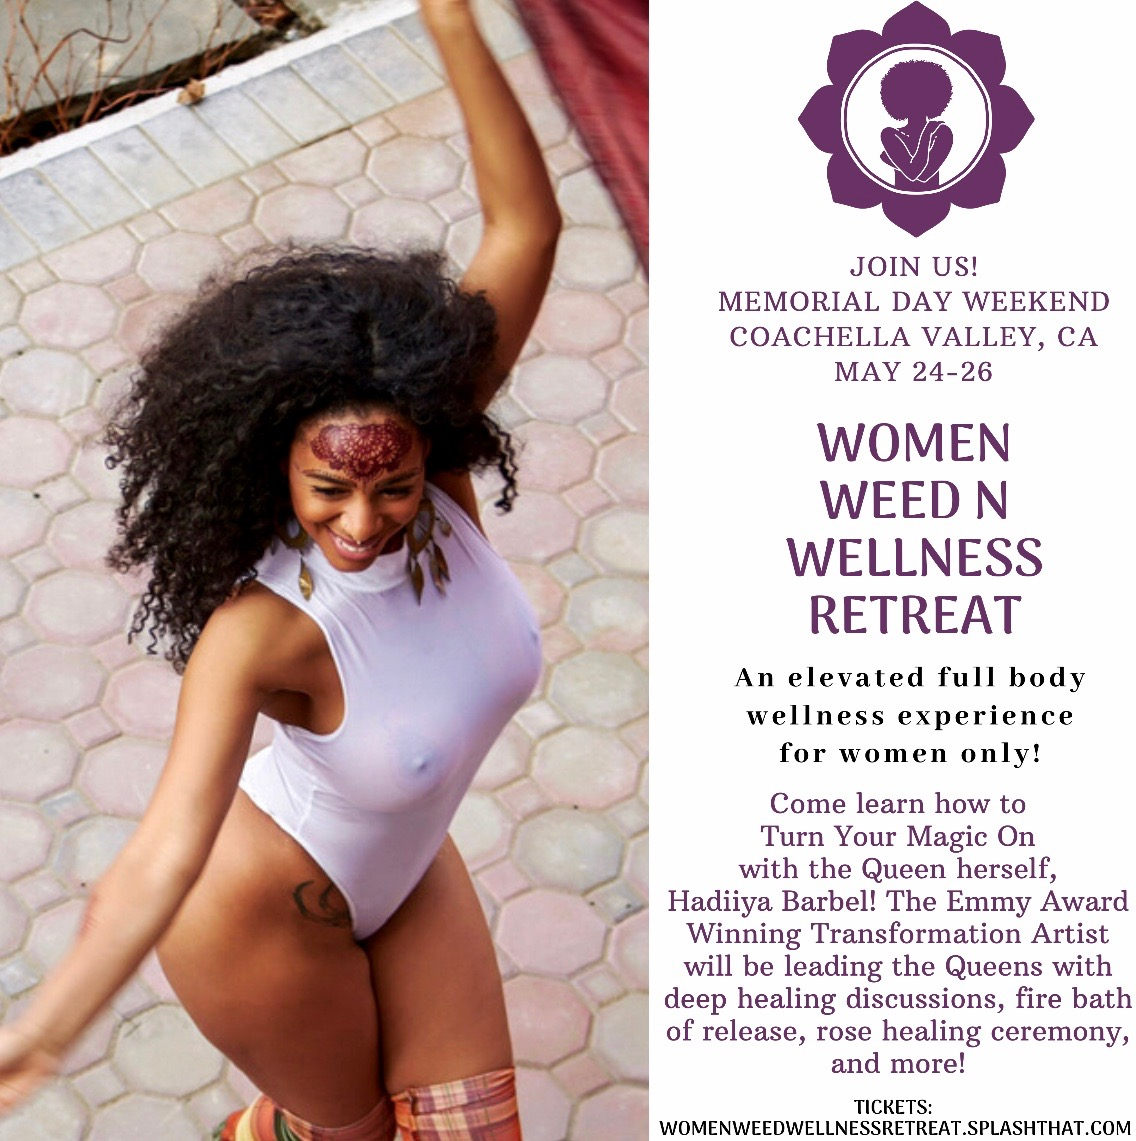 Women, Weed n Wellness Retreat